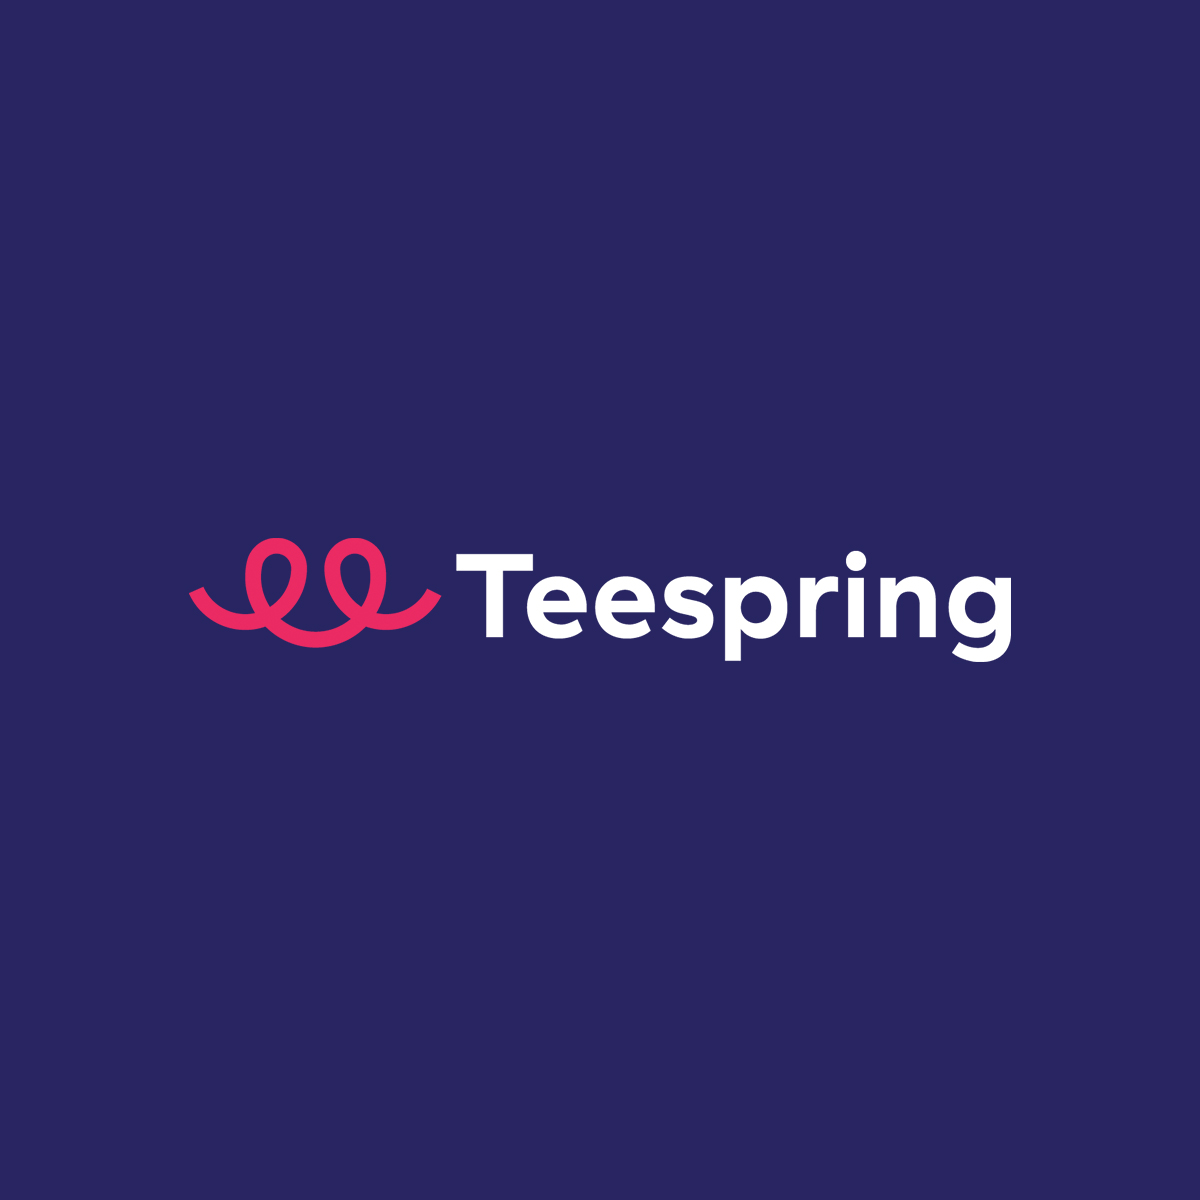 - CHECK OUT OUR TEESPRING STOREFRONT!!teespring.com/ufo-hub